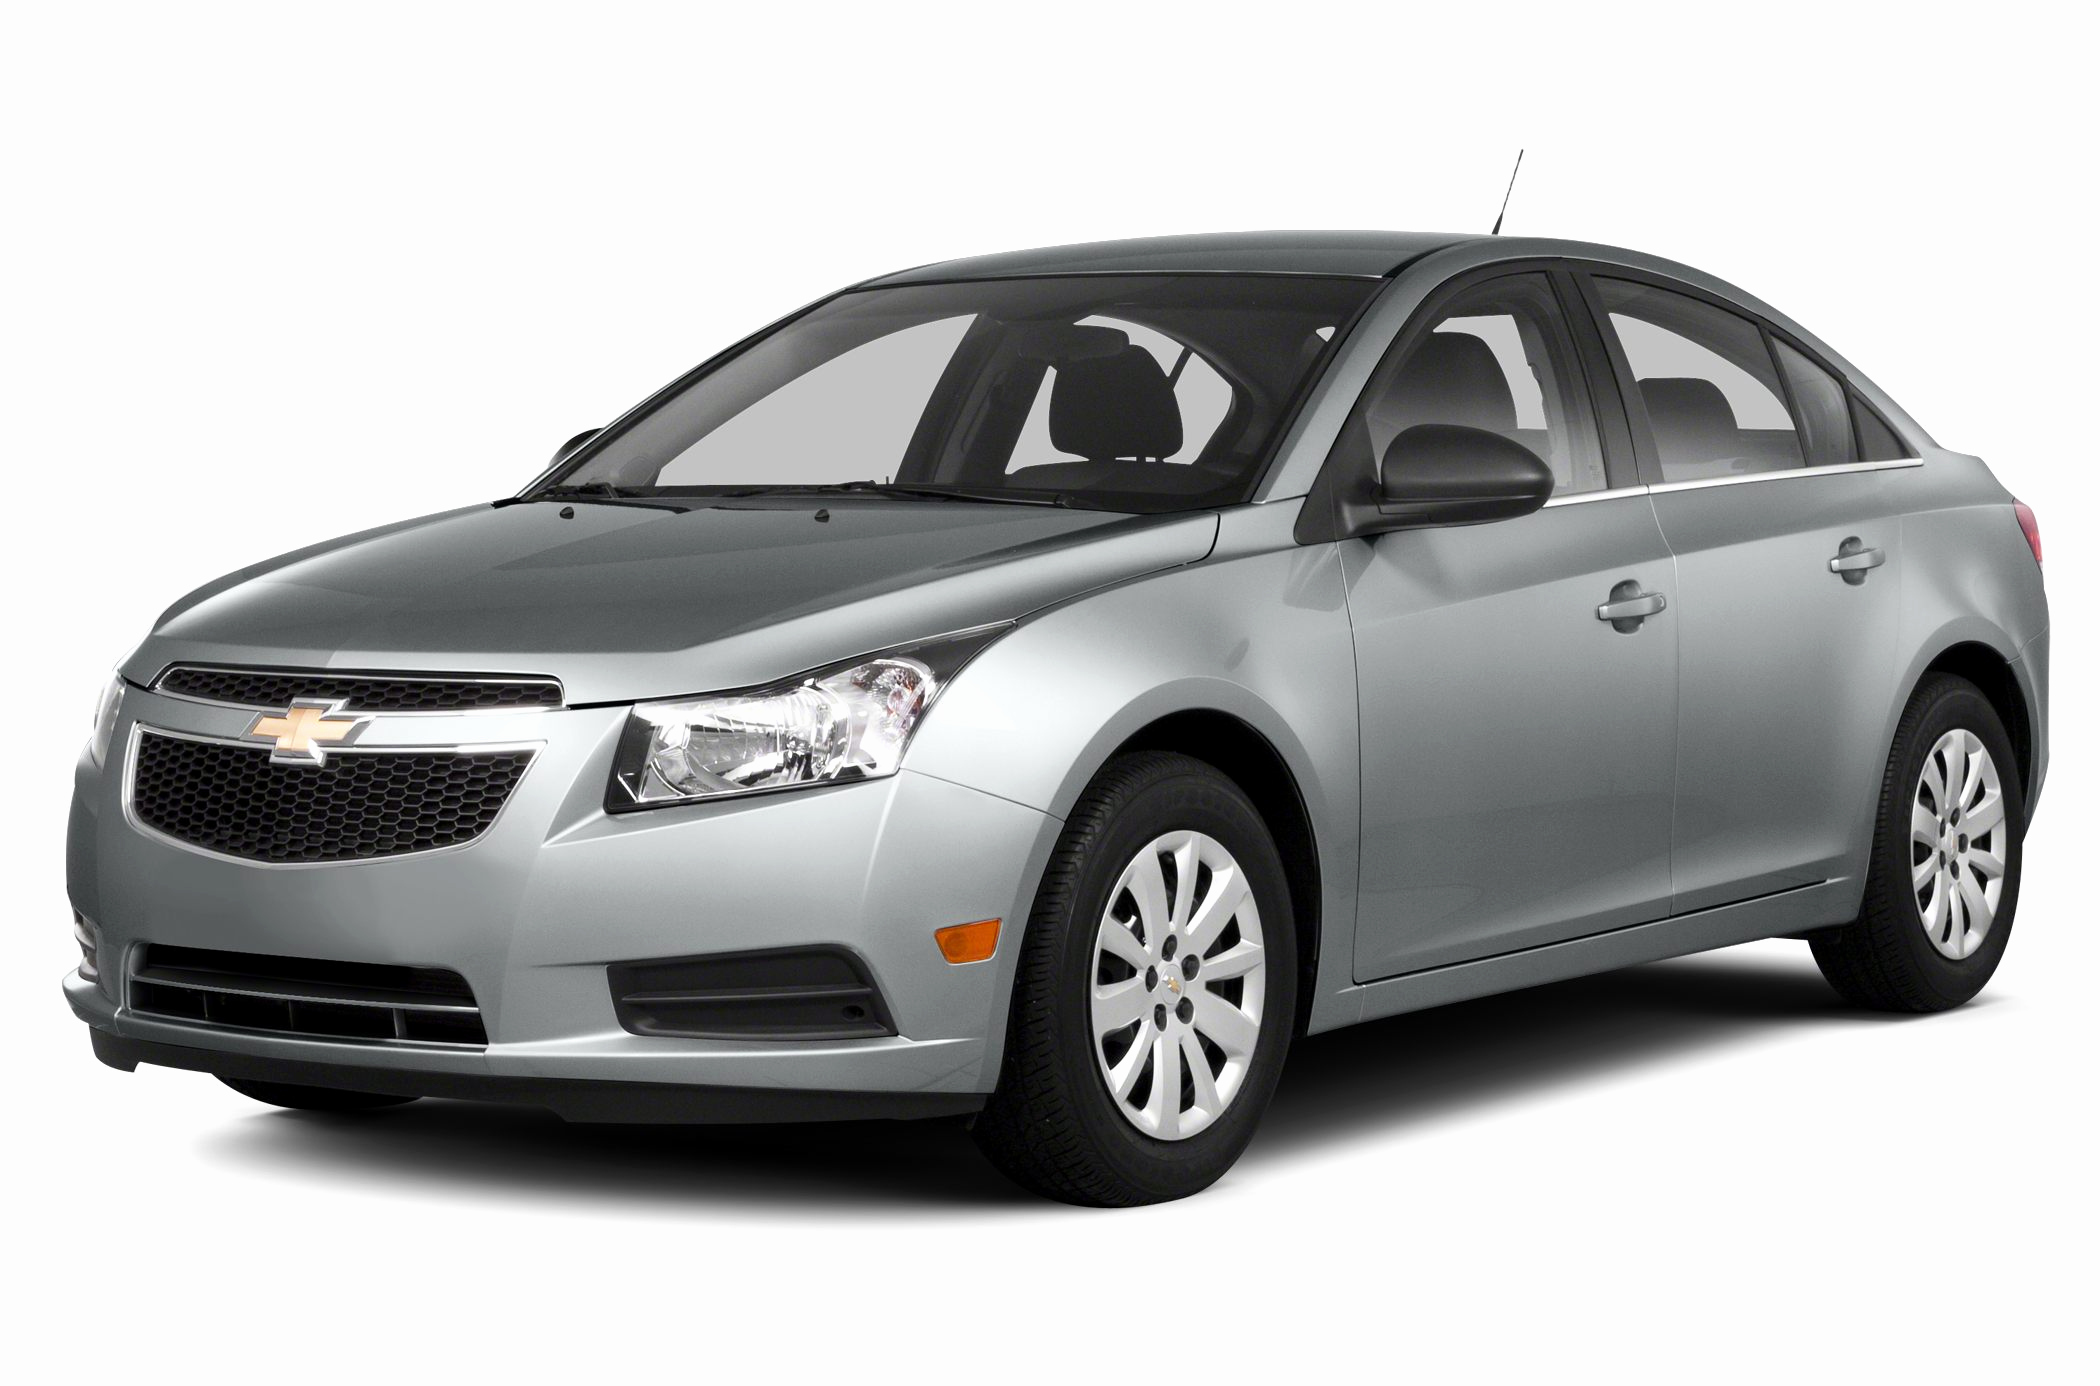 nissan altima ratings lovely used cars for sale at manfredi chevrolet in staten island ny under